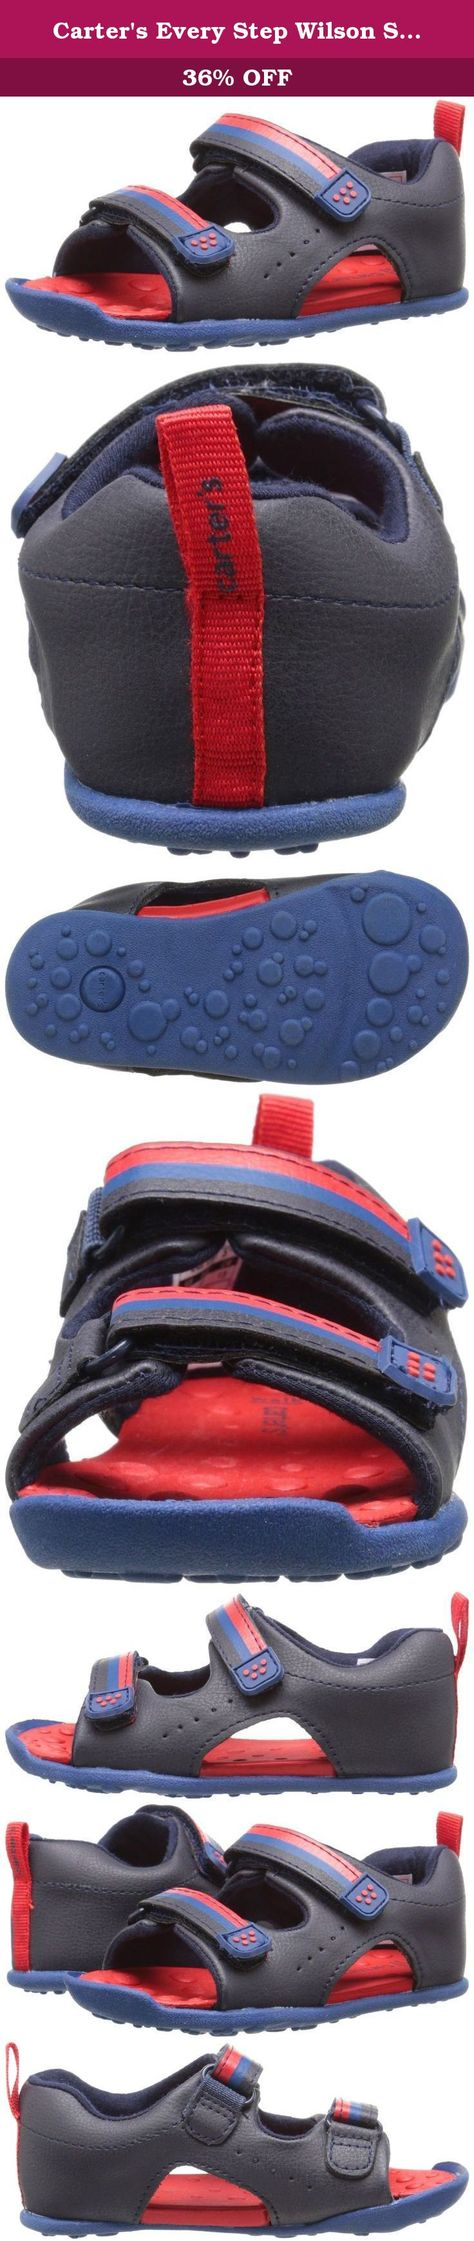 Non-Slip Summer Shoes Kids Boys Open Toe Three Strap Walking Sandals Durable Color : Navy , Size : 4.5 M US Big Kid